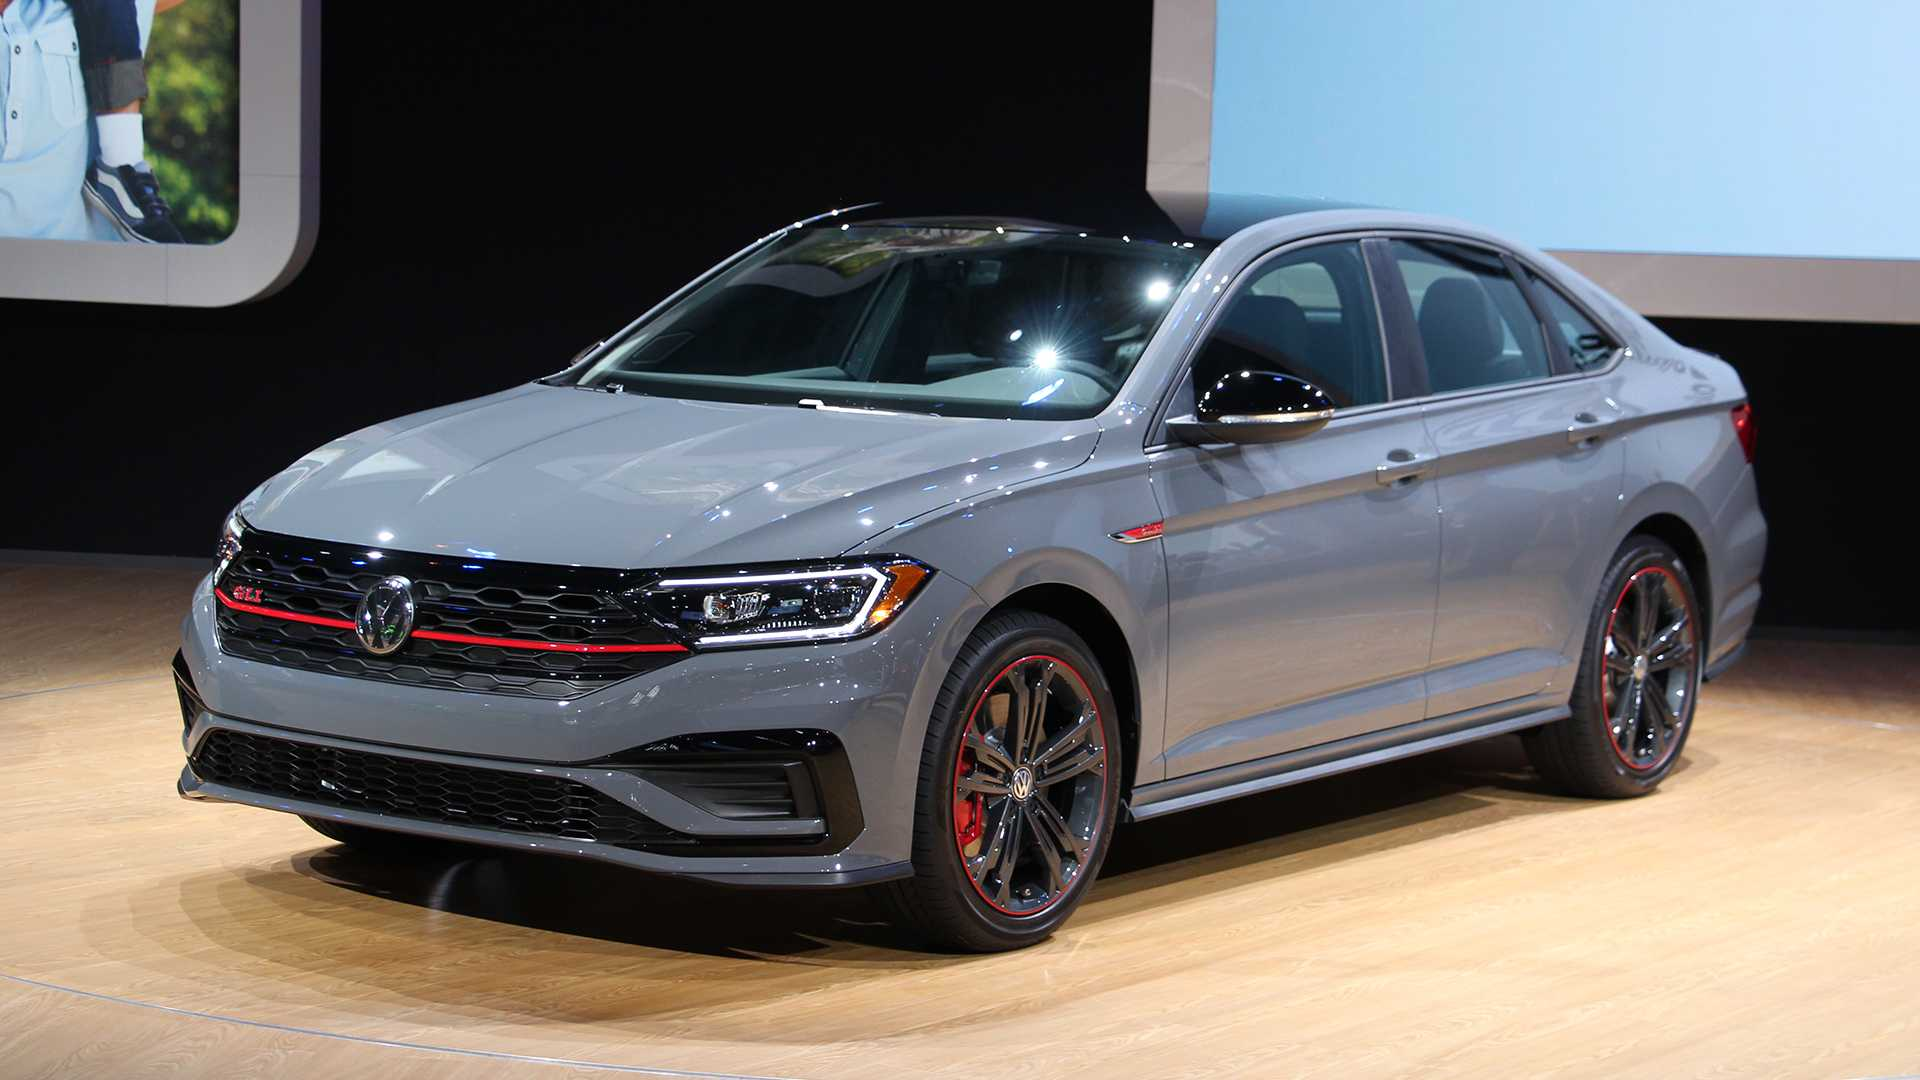 32 Gallery of New Volkswagen Jetta Gli 2019 Redesign And Concept Performance and New Engine with New Volkswagen Jetta Gli 2019 Redesign And Concept